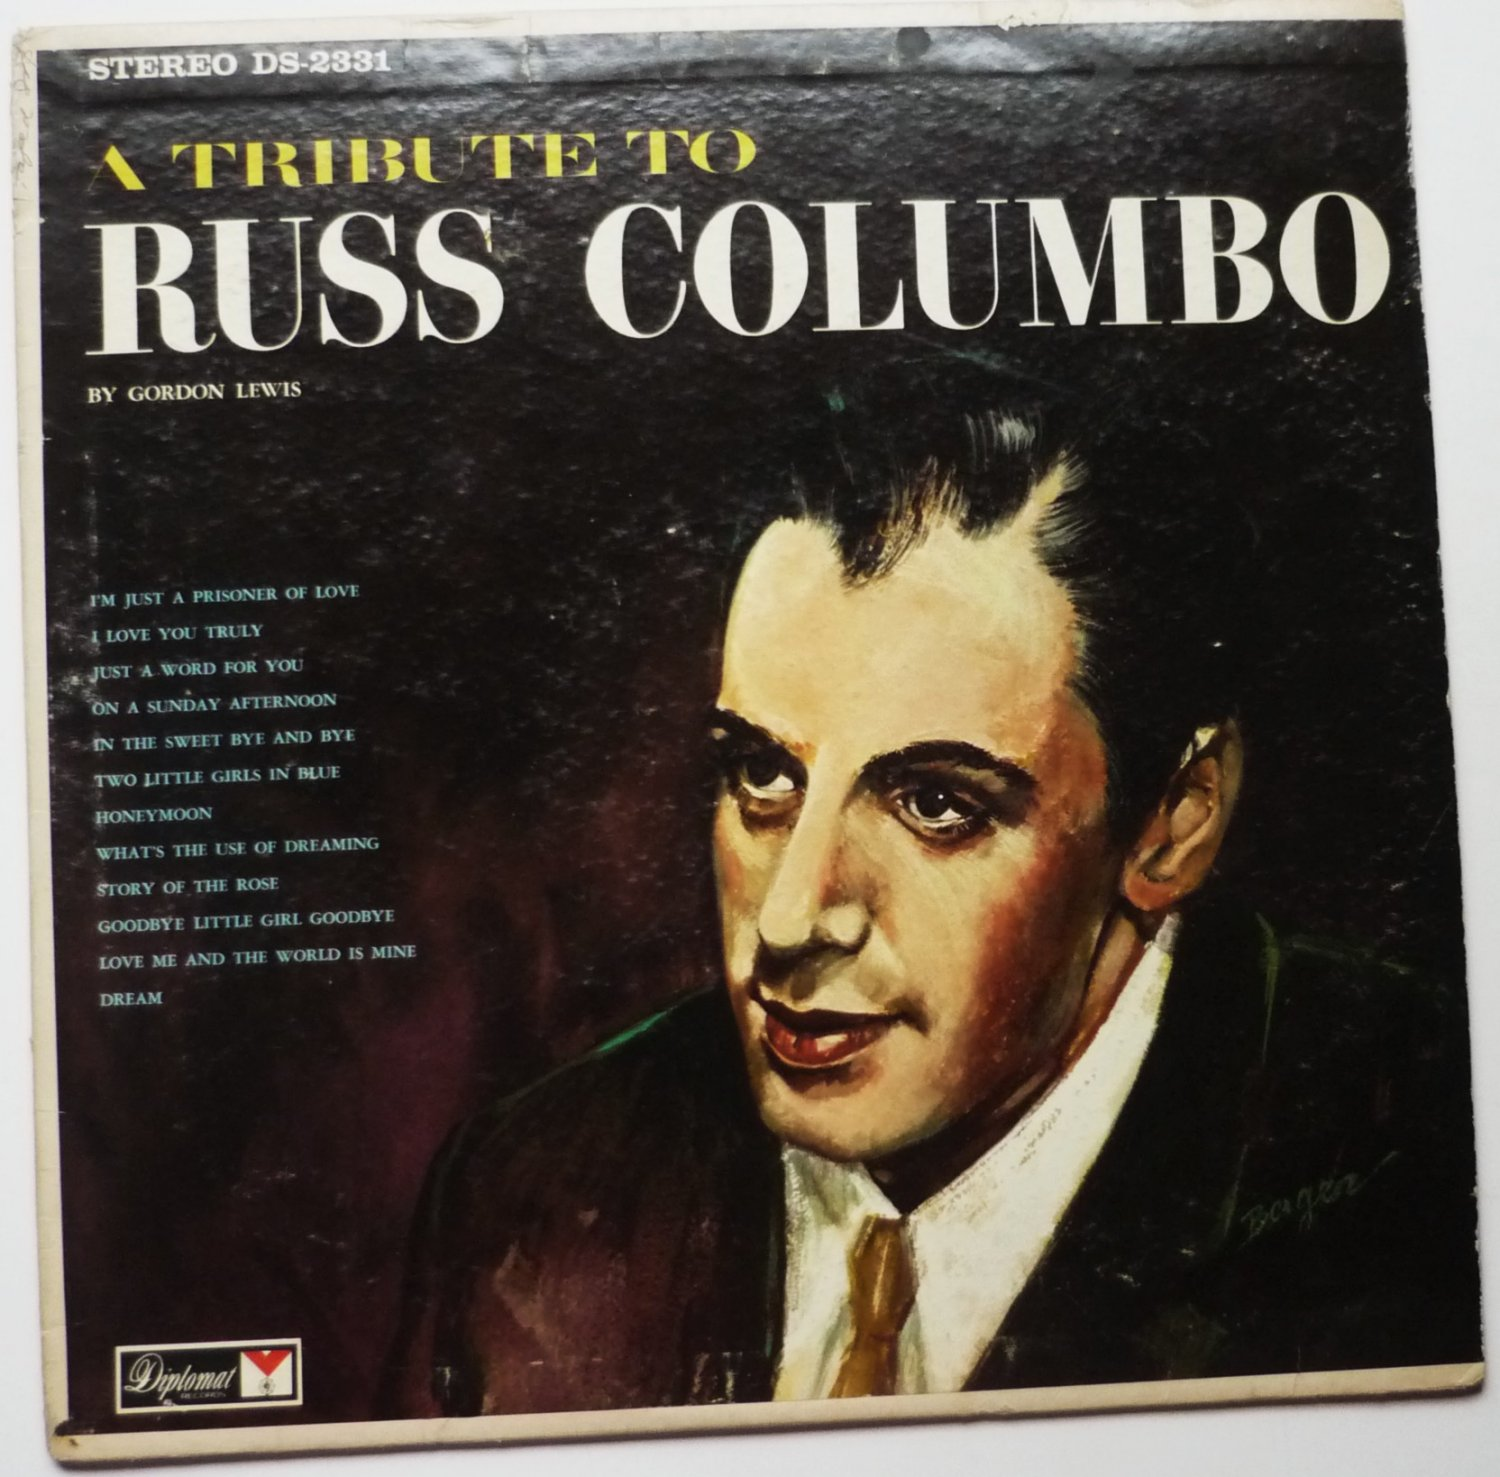 A Tribute to Russ Columbo lp by Gordon Lewis